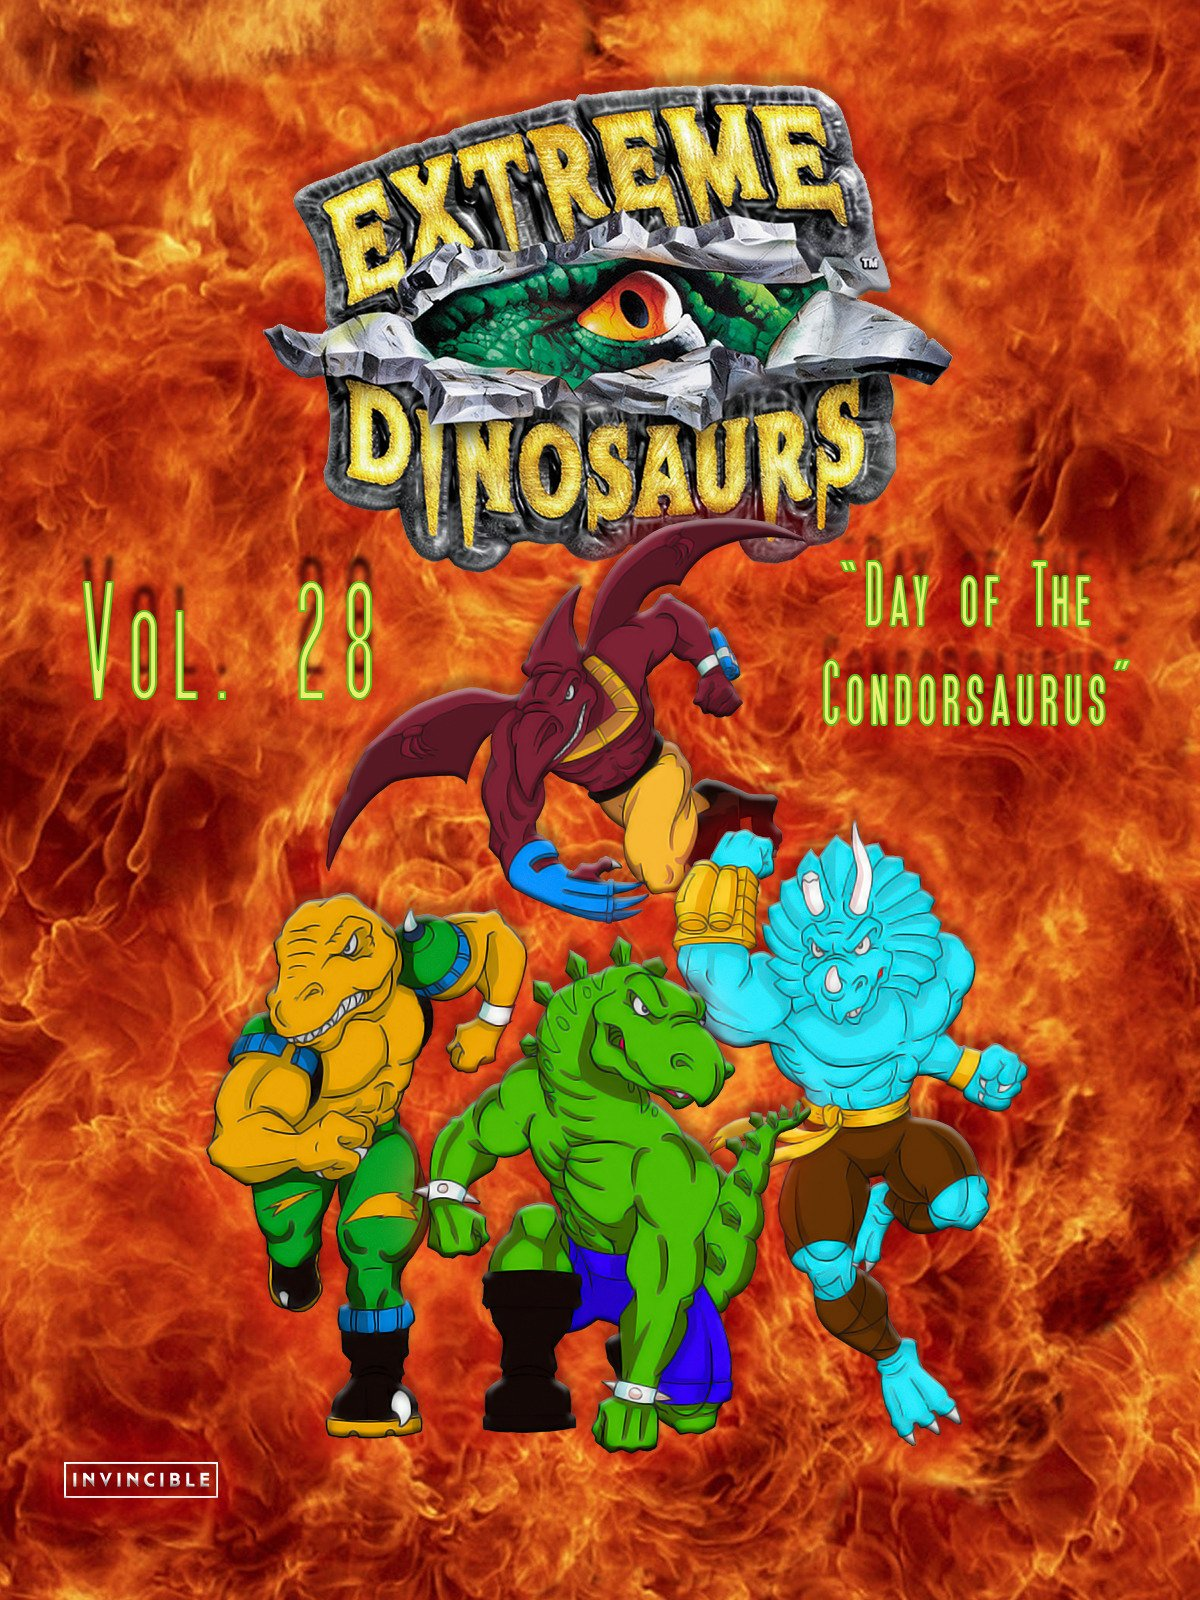 Extreme Dinosaurs Vol. 28 Day of The Condorsaurus